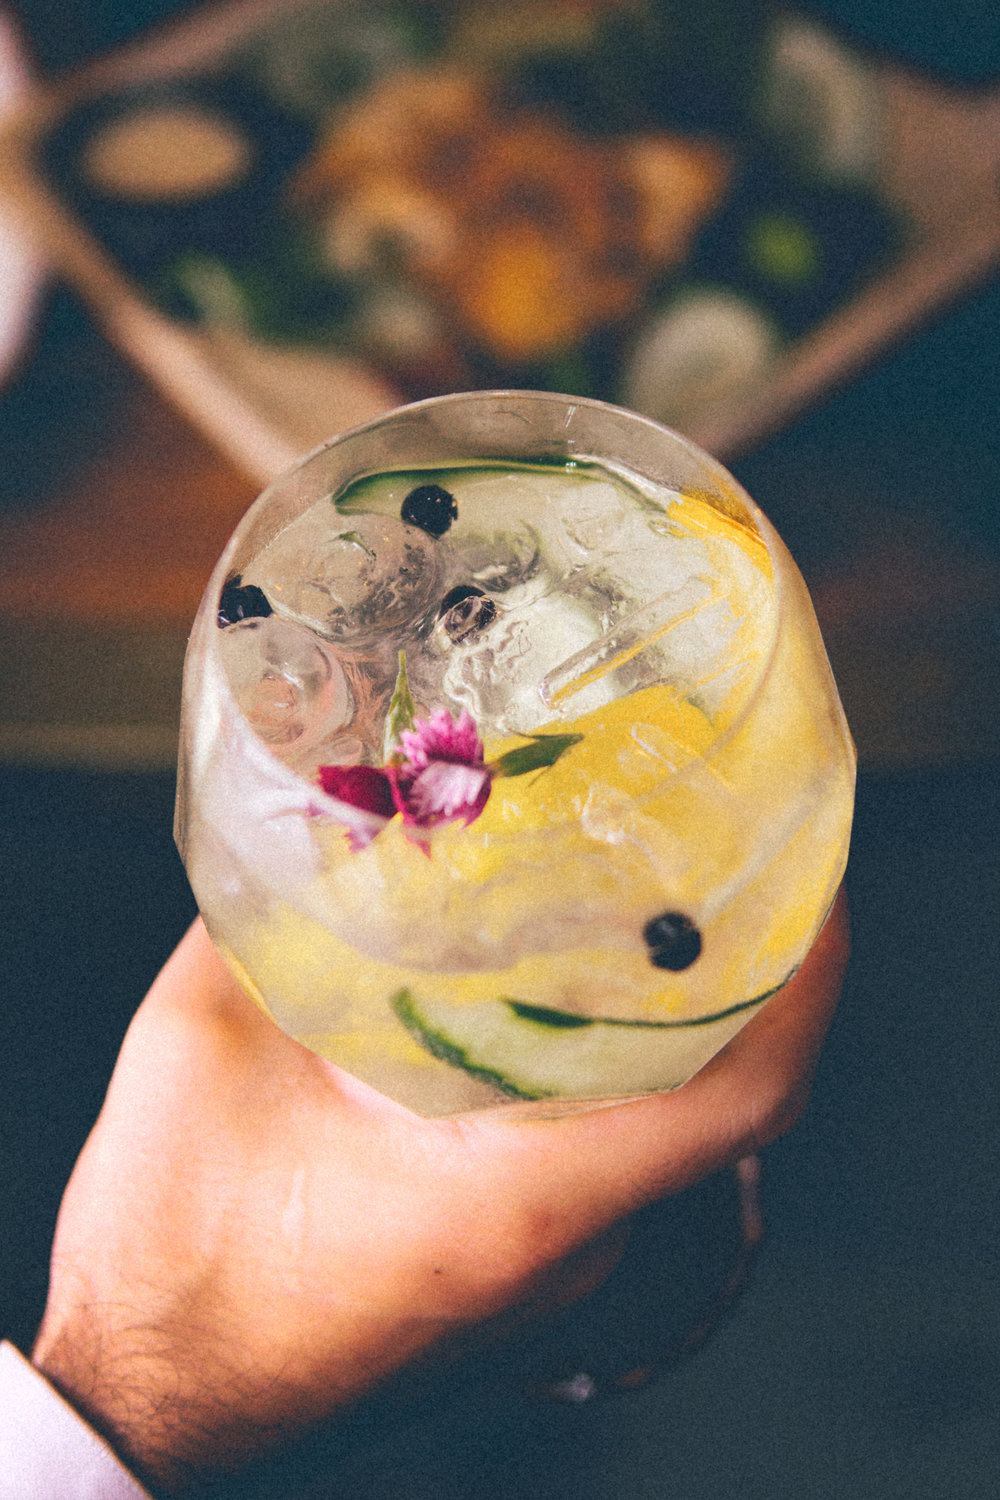 FIn & Tonic | A Spanish style gin and tonic crafted with Hendricks Gin, Thatcher's Elderflower, citrus peel, juniper berries, cucumber and fresh flowers